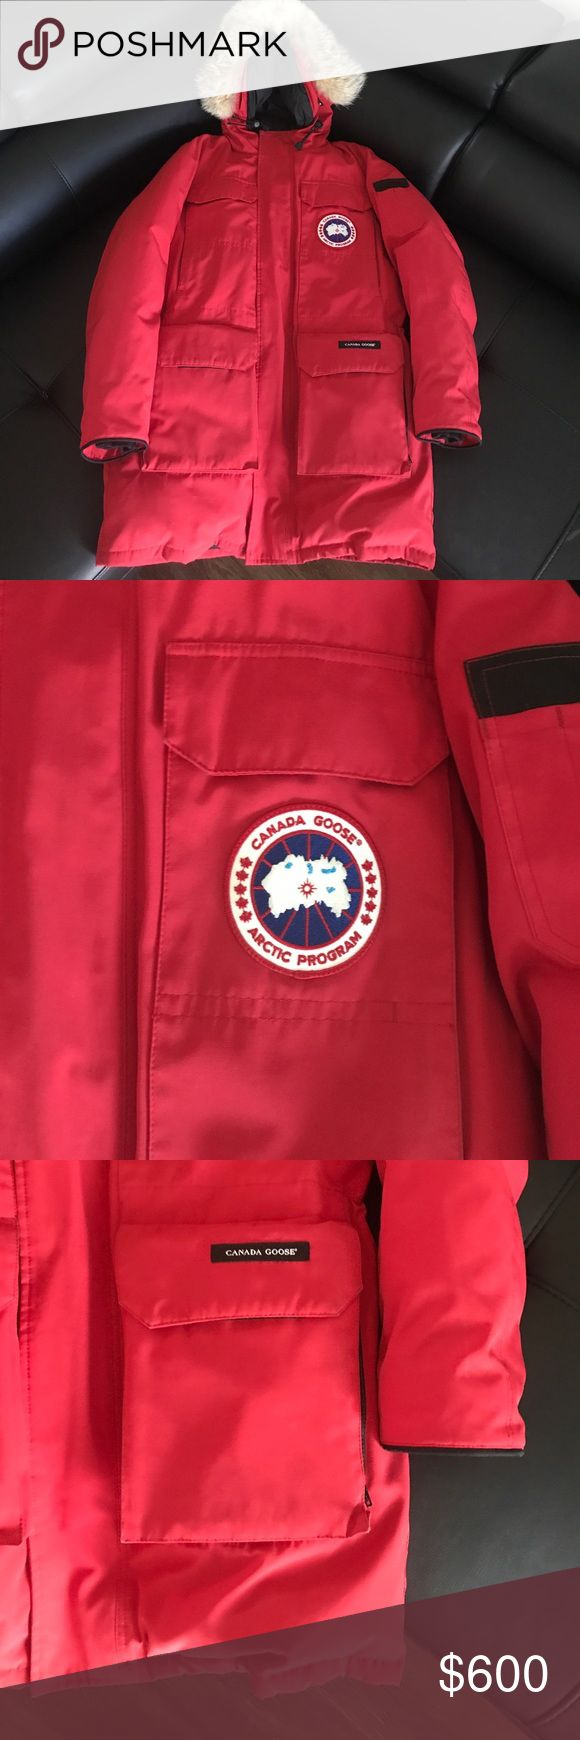 Canada Goose Parka Red Canadian Goose Parka Canada Goose Jackets & Coats Puffers